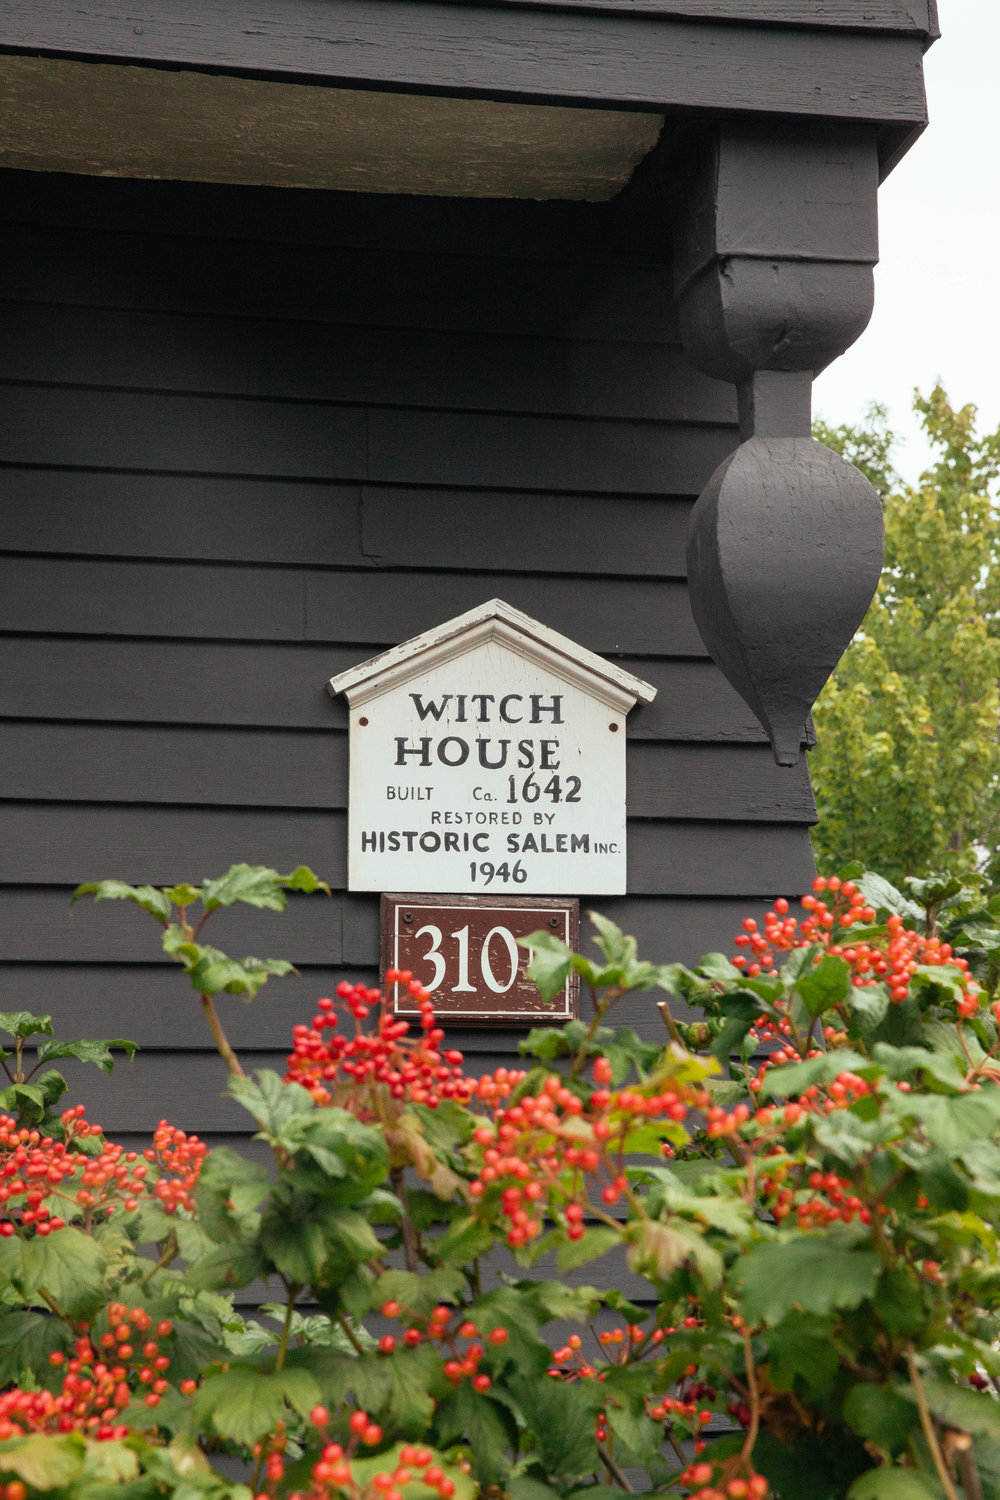 The Witch House, or Judge Jonathan Corwin's house.